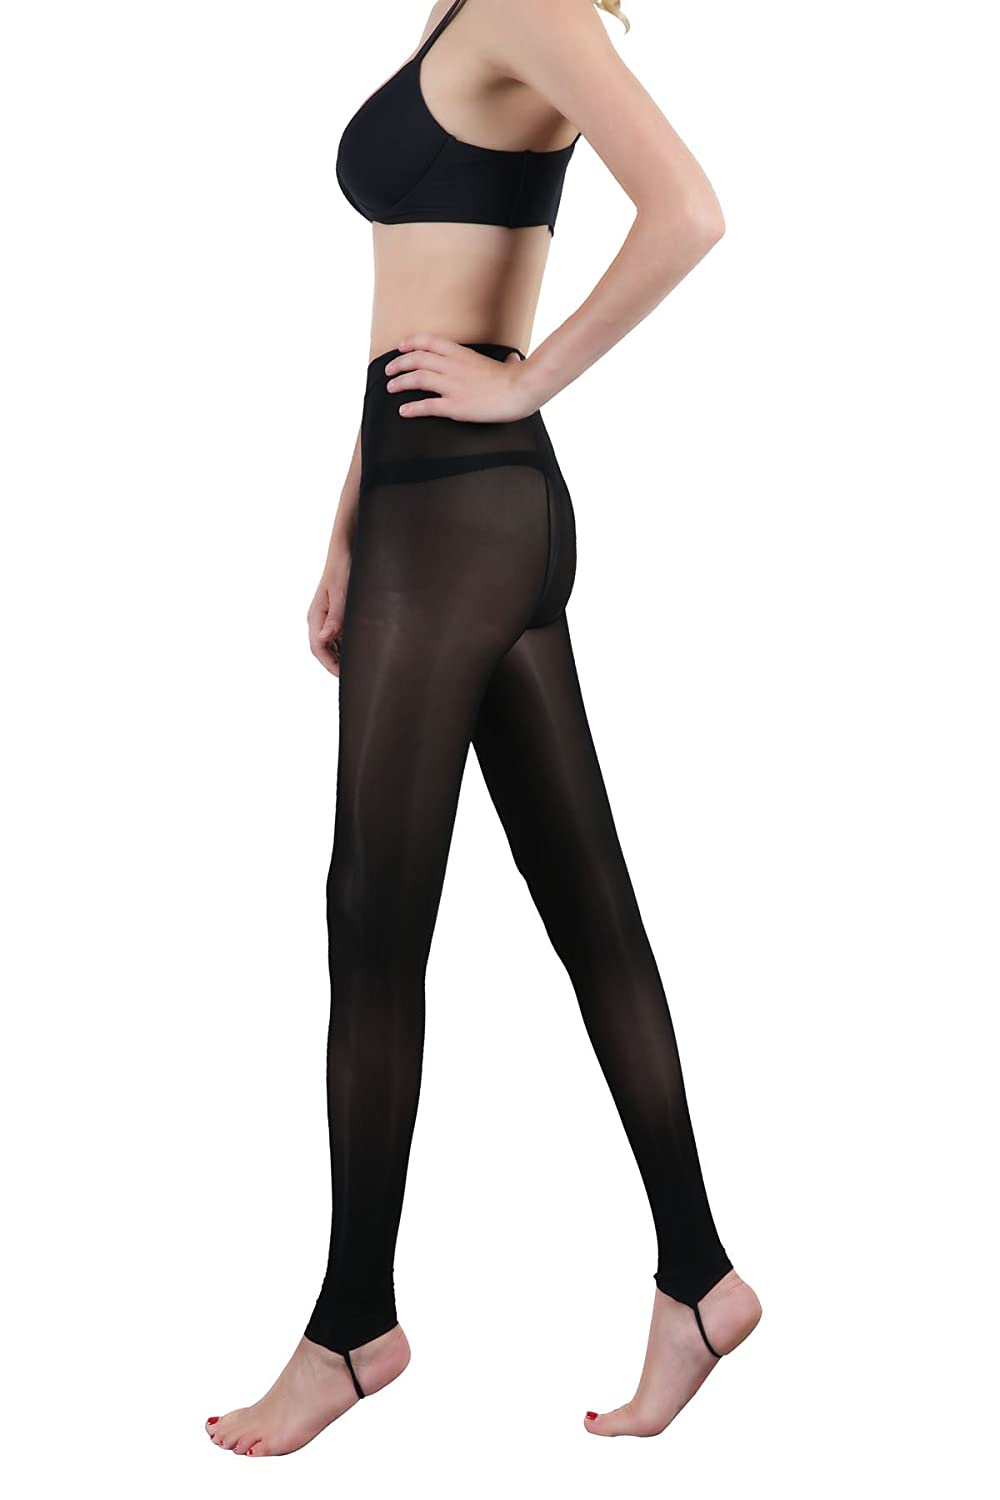 LIN Womens 2 Pack Ultra Soft Sheer Pantyhose Stockings T Crotch Tights Black Nude Light Brown